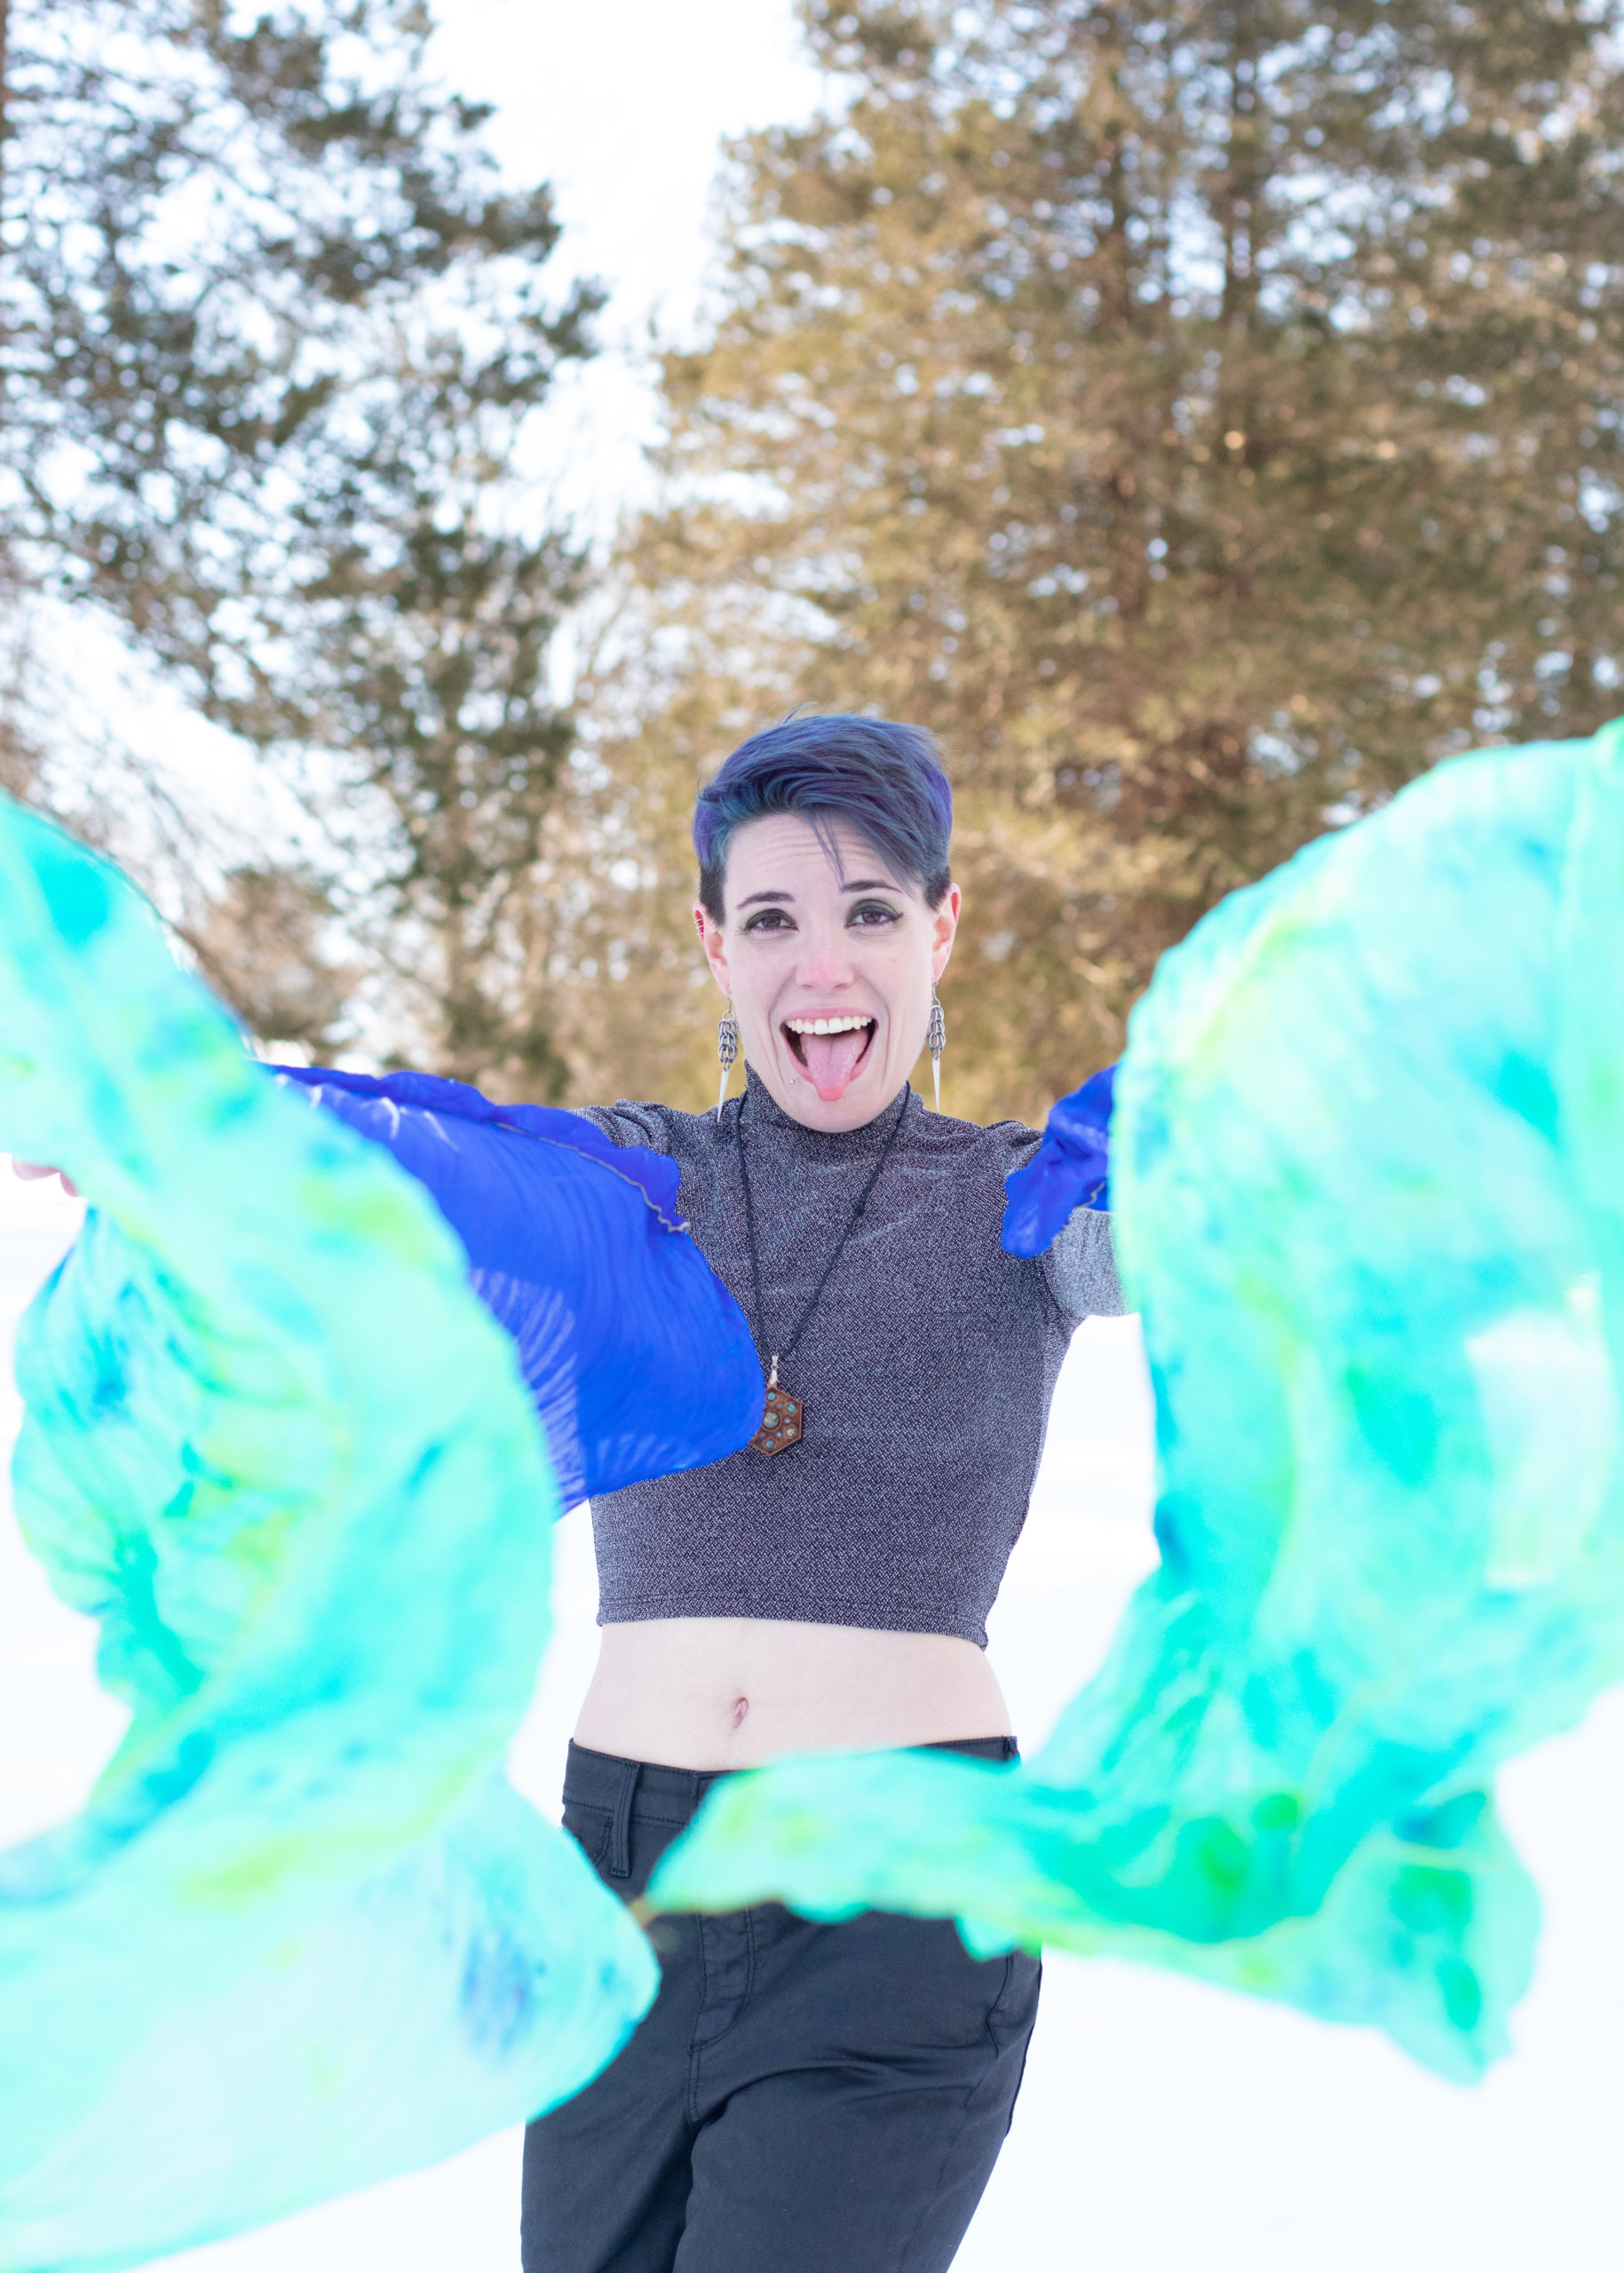 Winter Photo Shoot at Trexler Park in Allentown, PA